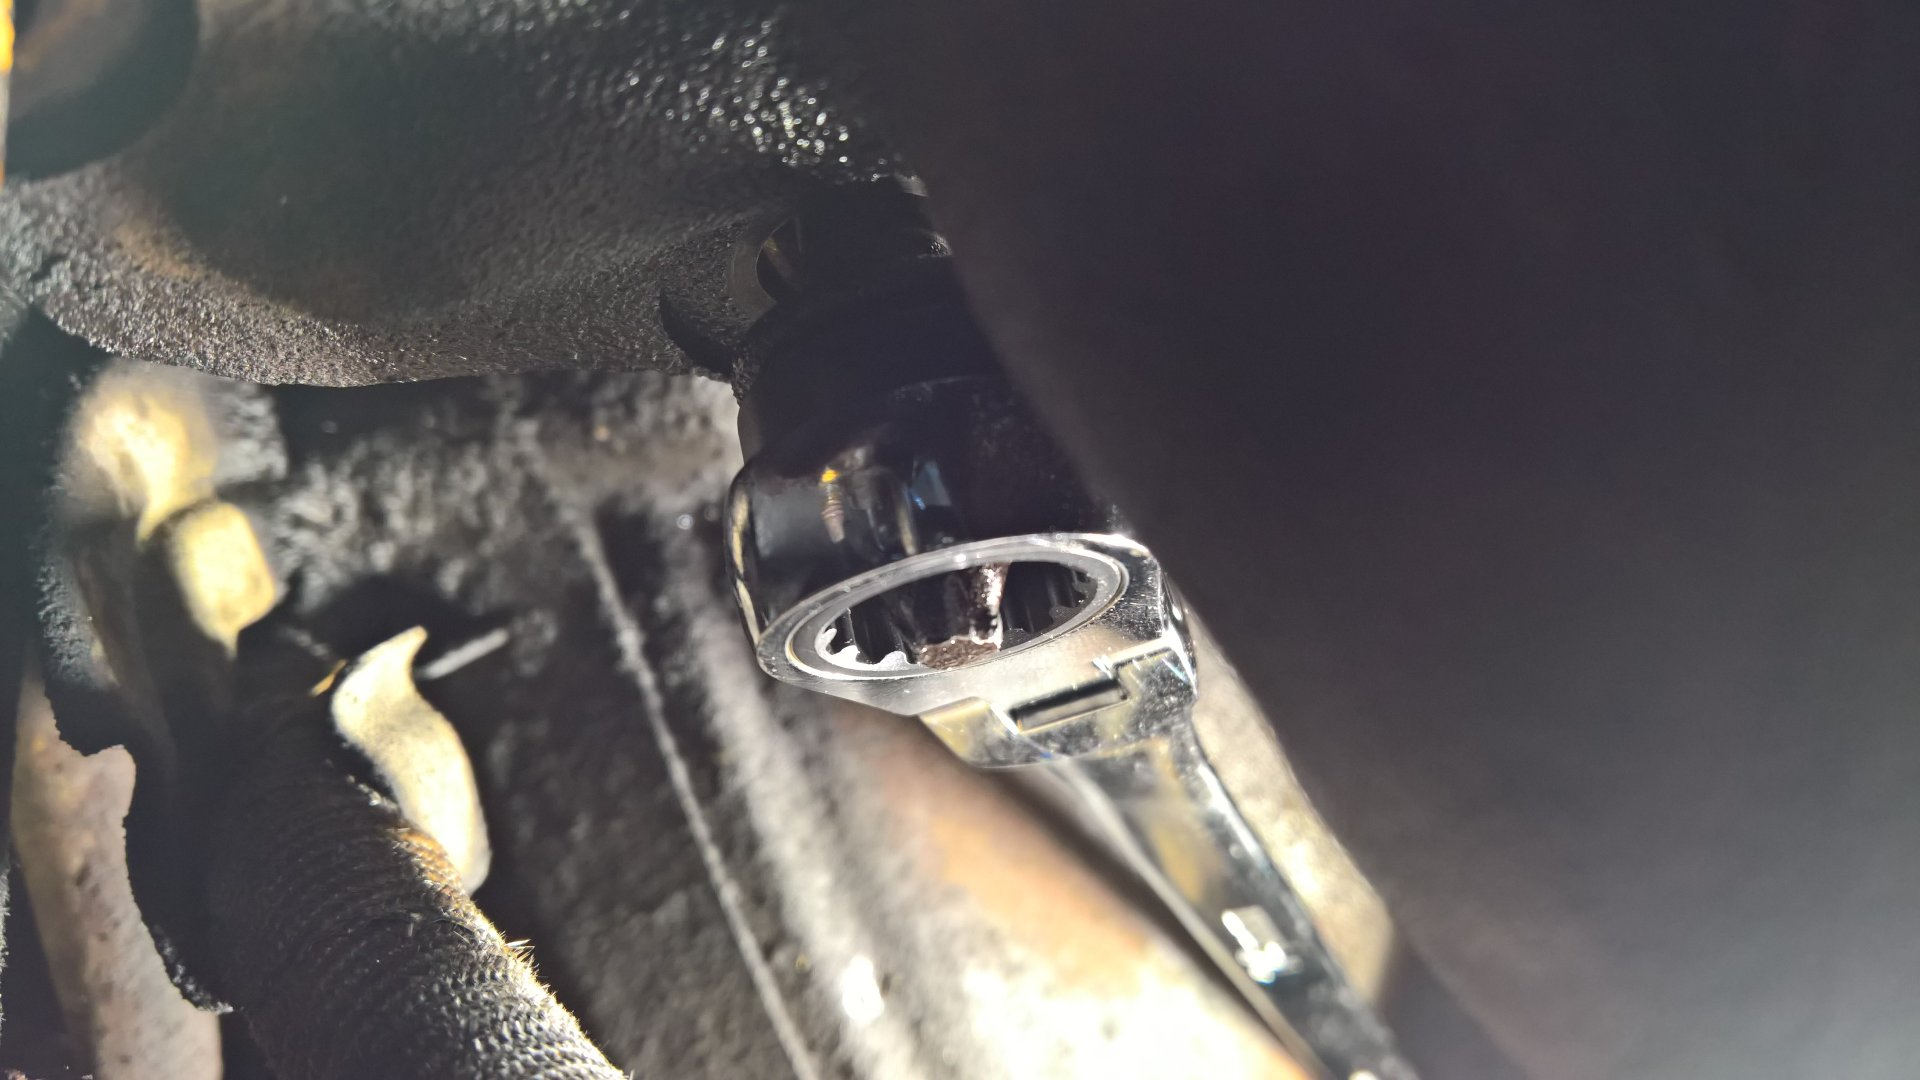 Exhaust manifold nut removal from below viewing wrench from abovve.jpg